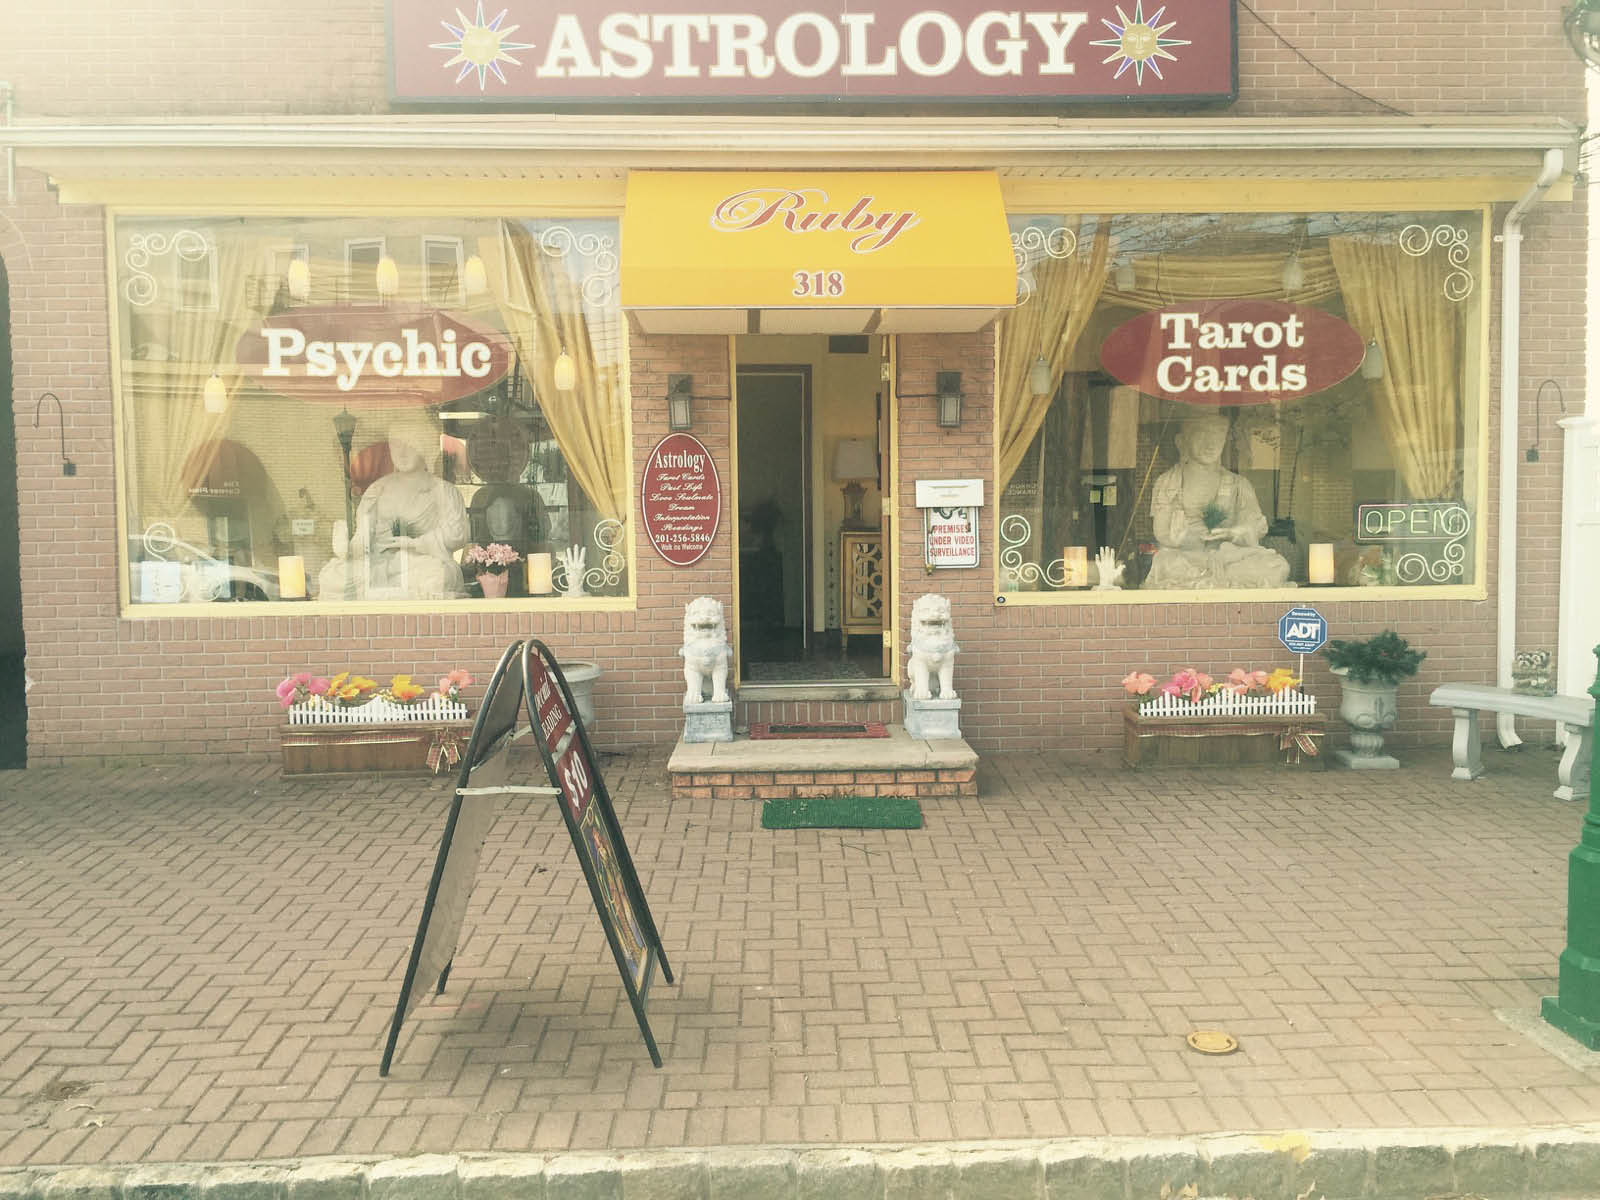 Astrology Reader Tenafly  Closter New Jersey 07624 Psychic Ruby Closter New Jersey Astrology Reader Tenafly New Jersey psychic reading Tenafly NJ online psychic NJ love psychic Tenafly New Jersey spiritual readings NJ